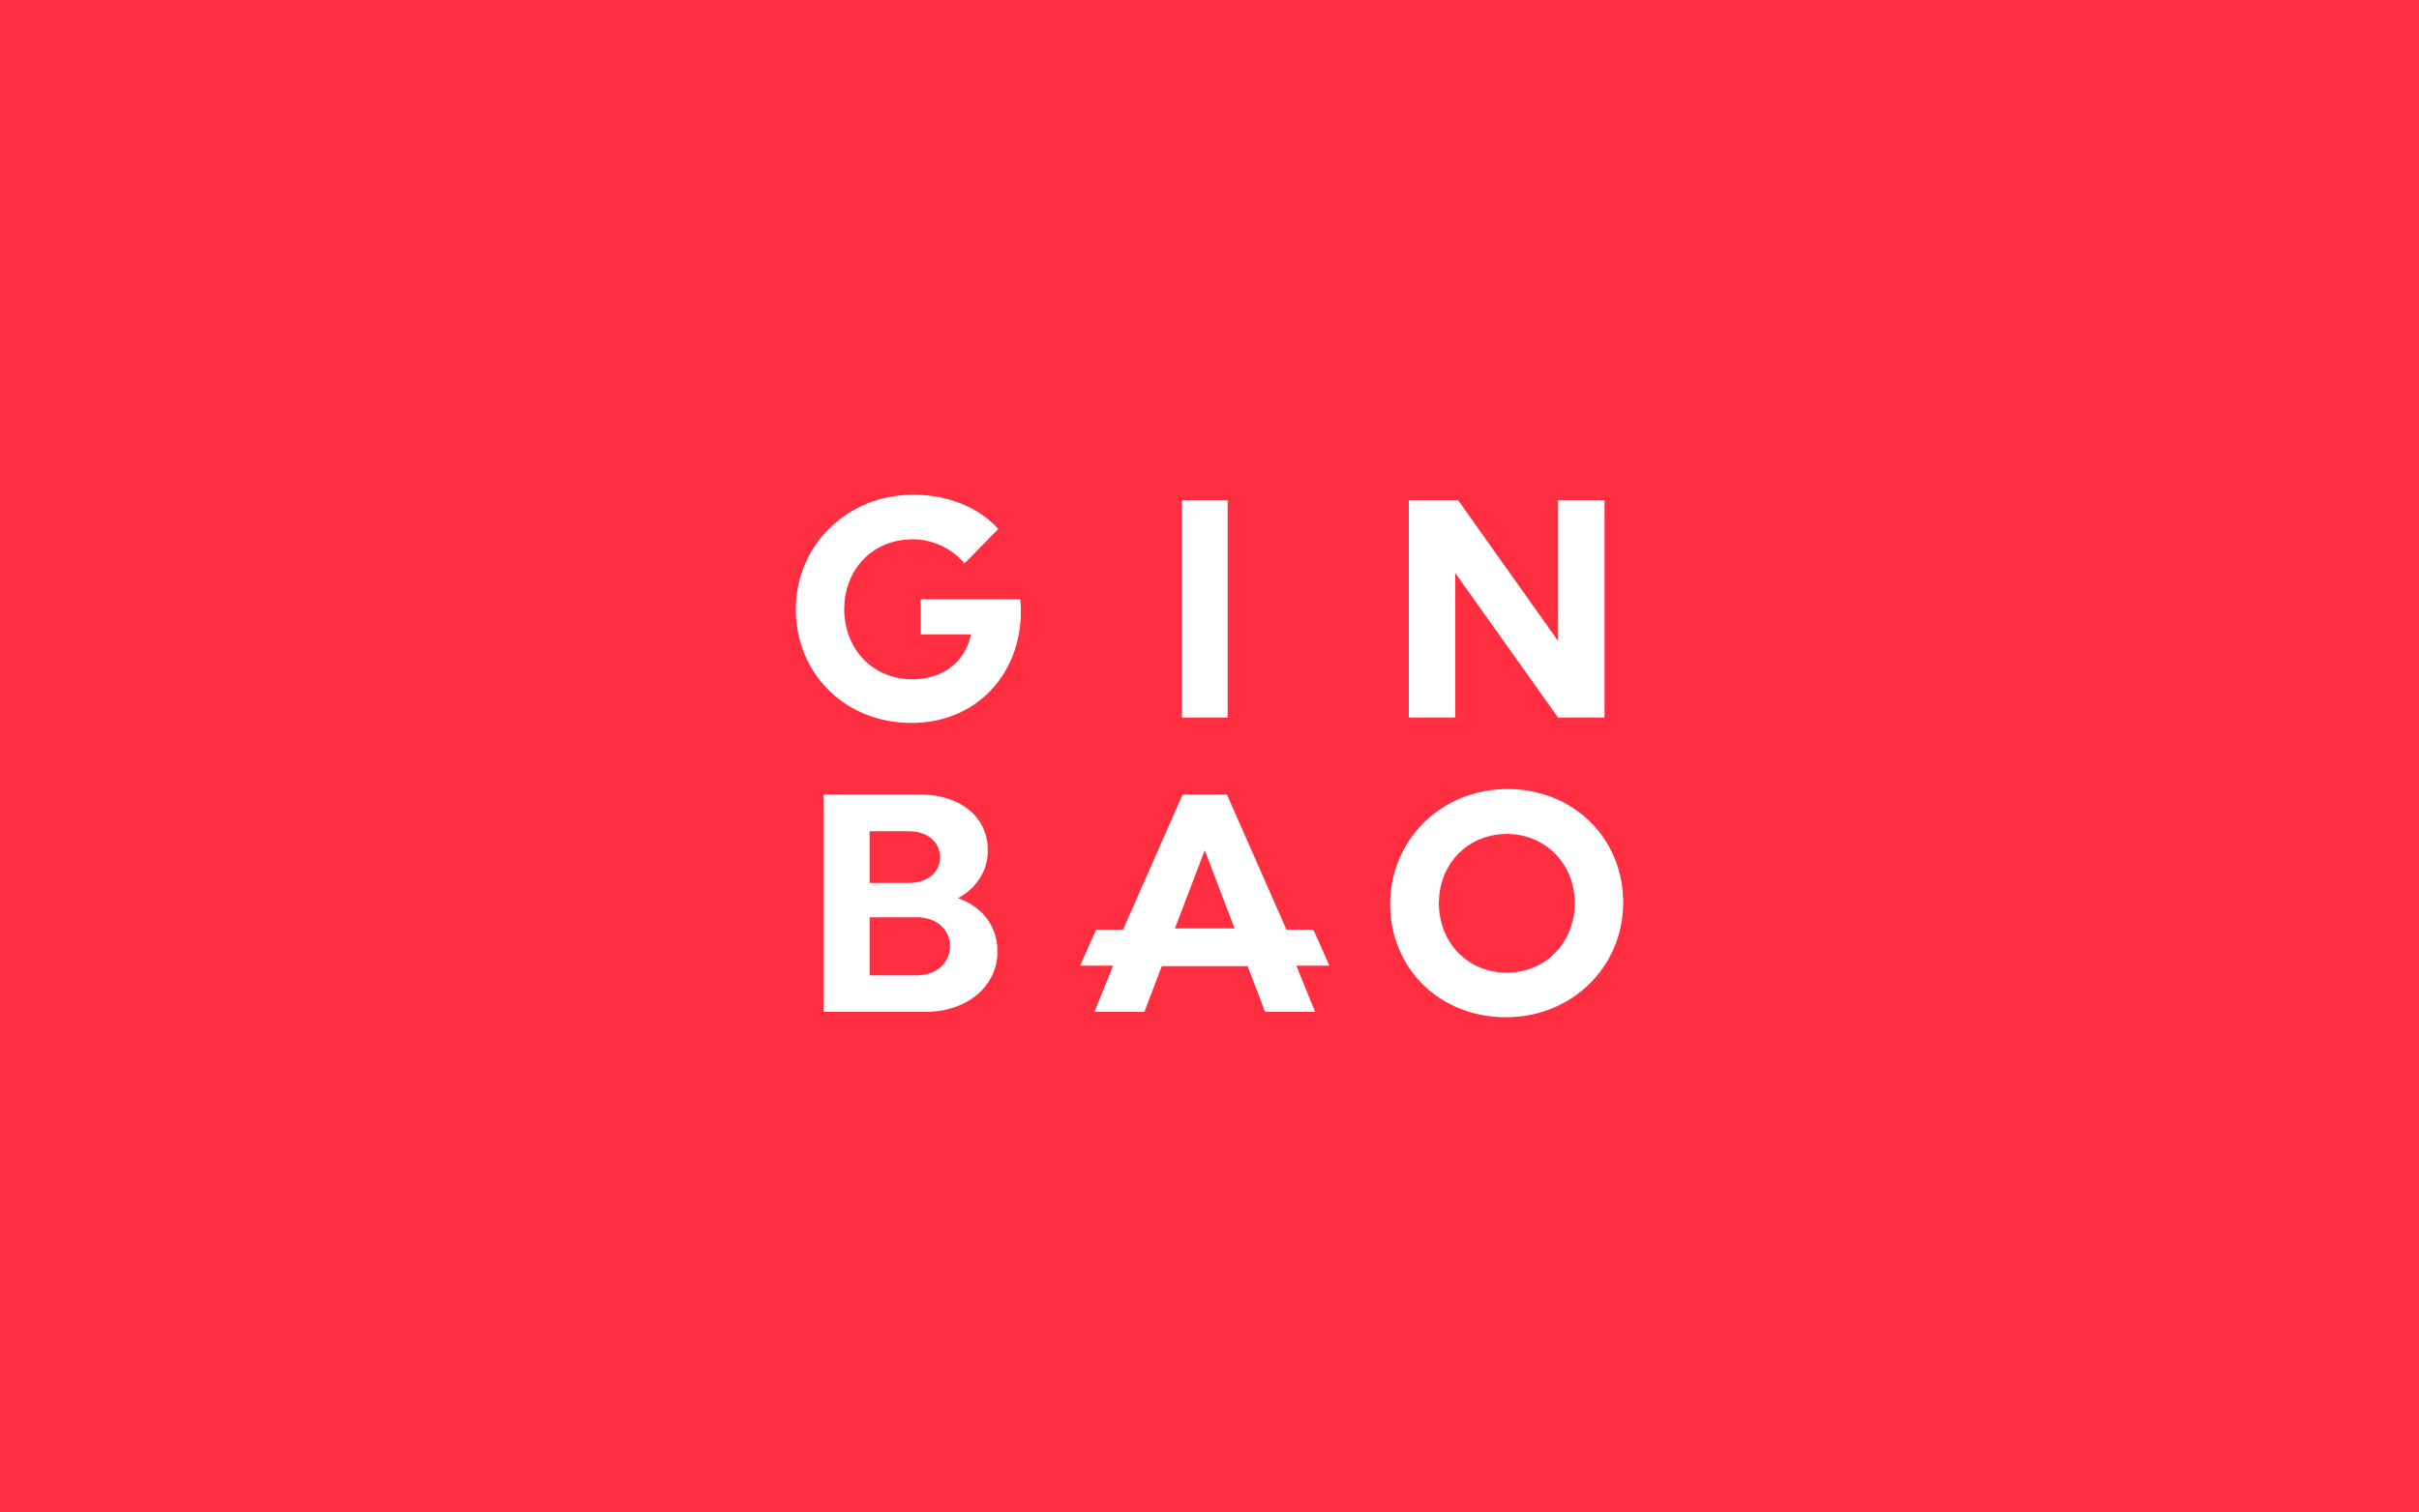 Mr. Mak's Ginbao logo design. Designed by Abby Haddican at Werner Design Werks.